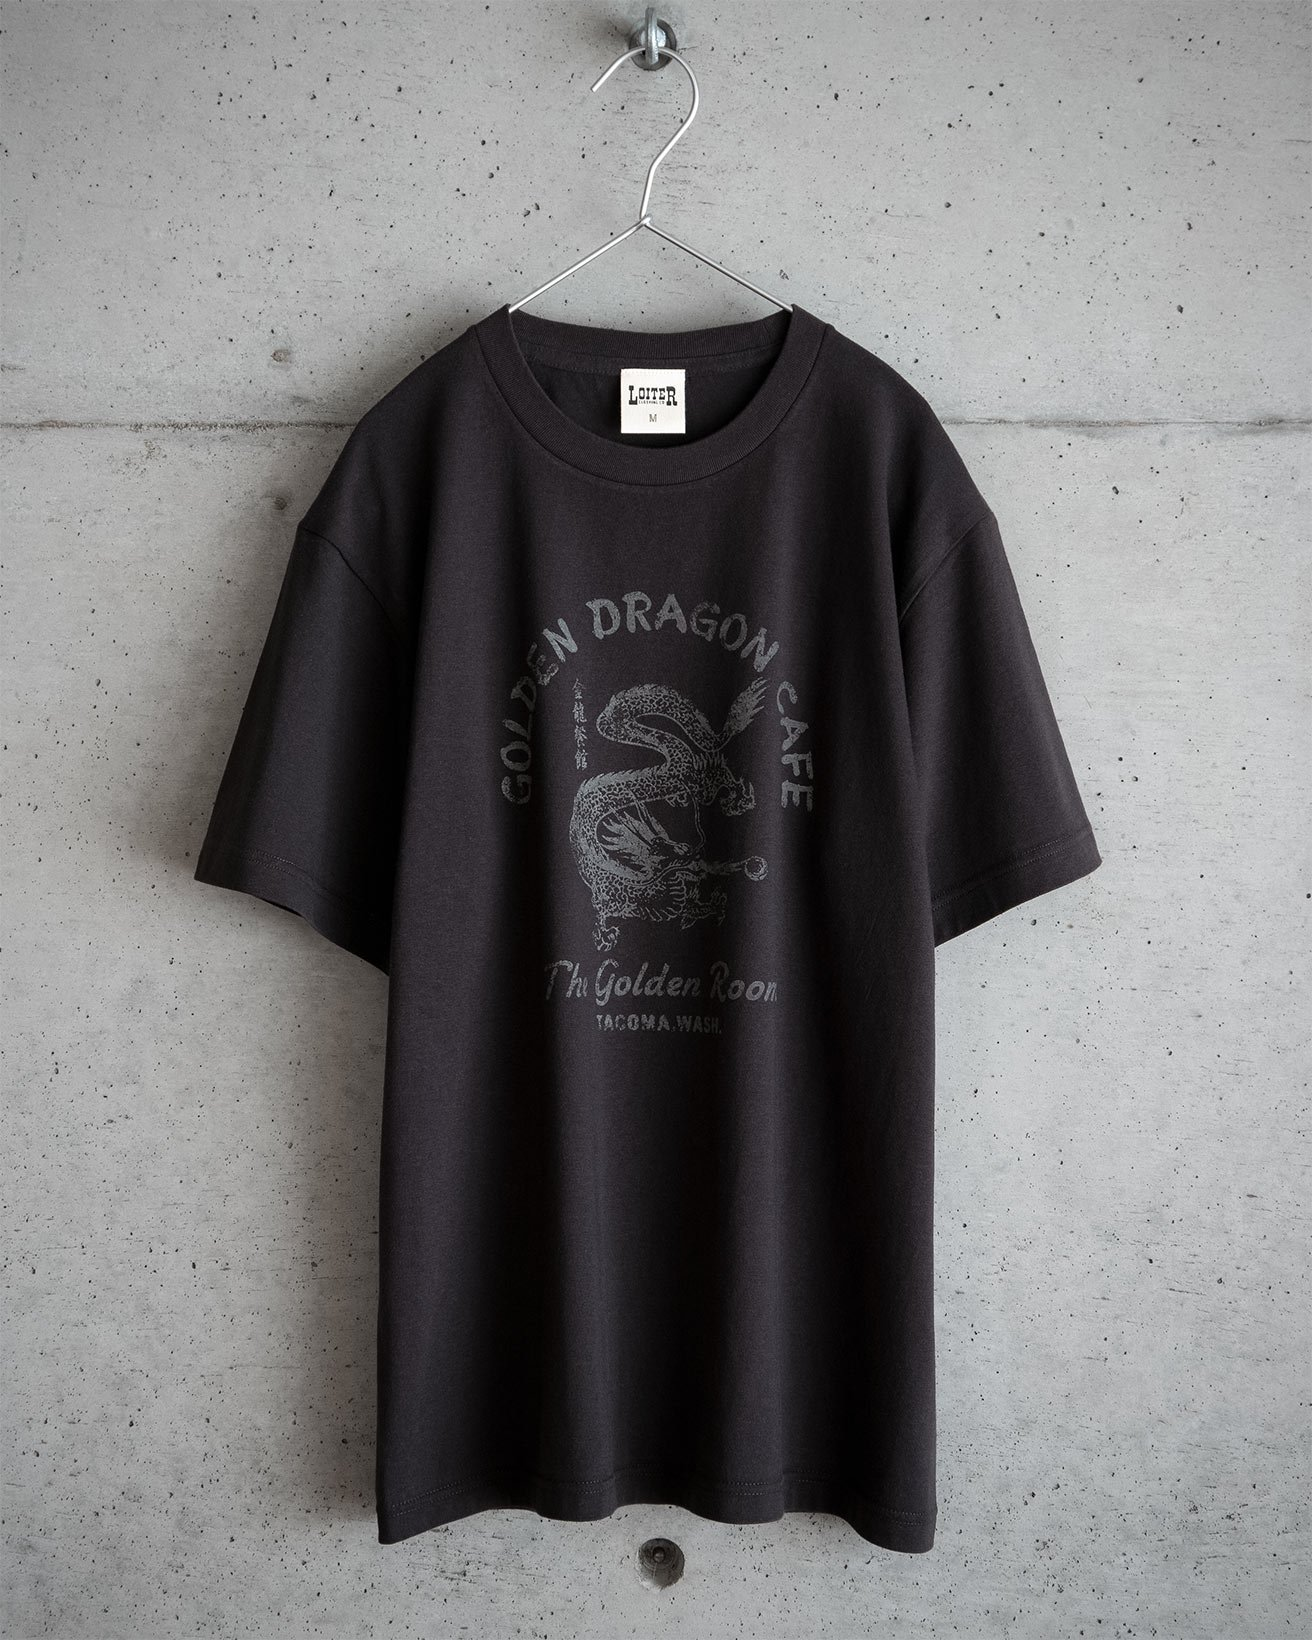 GOLDEN DRAGON CAFE Tシャツ